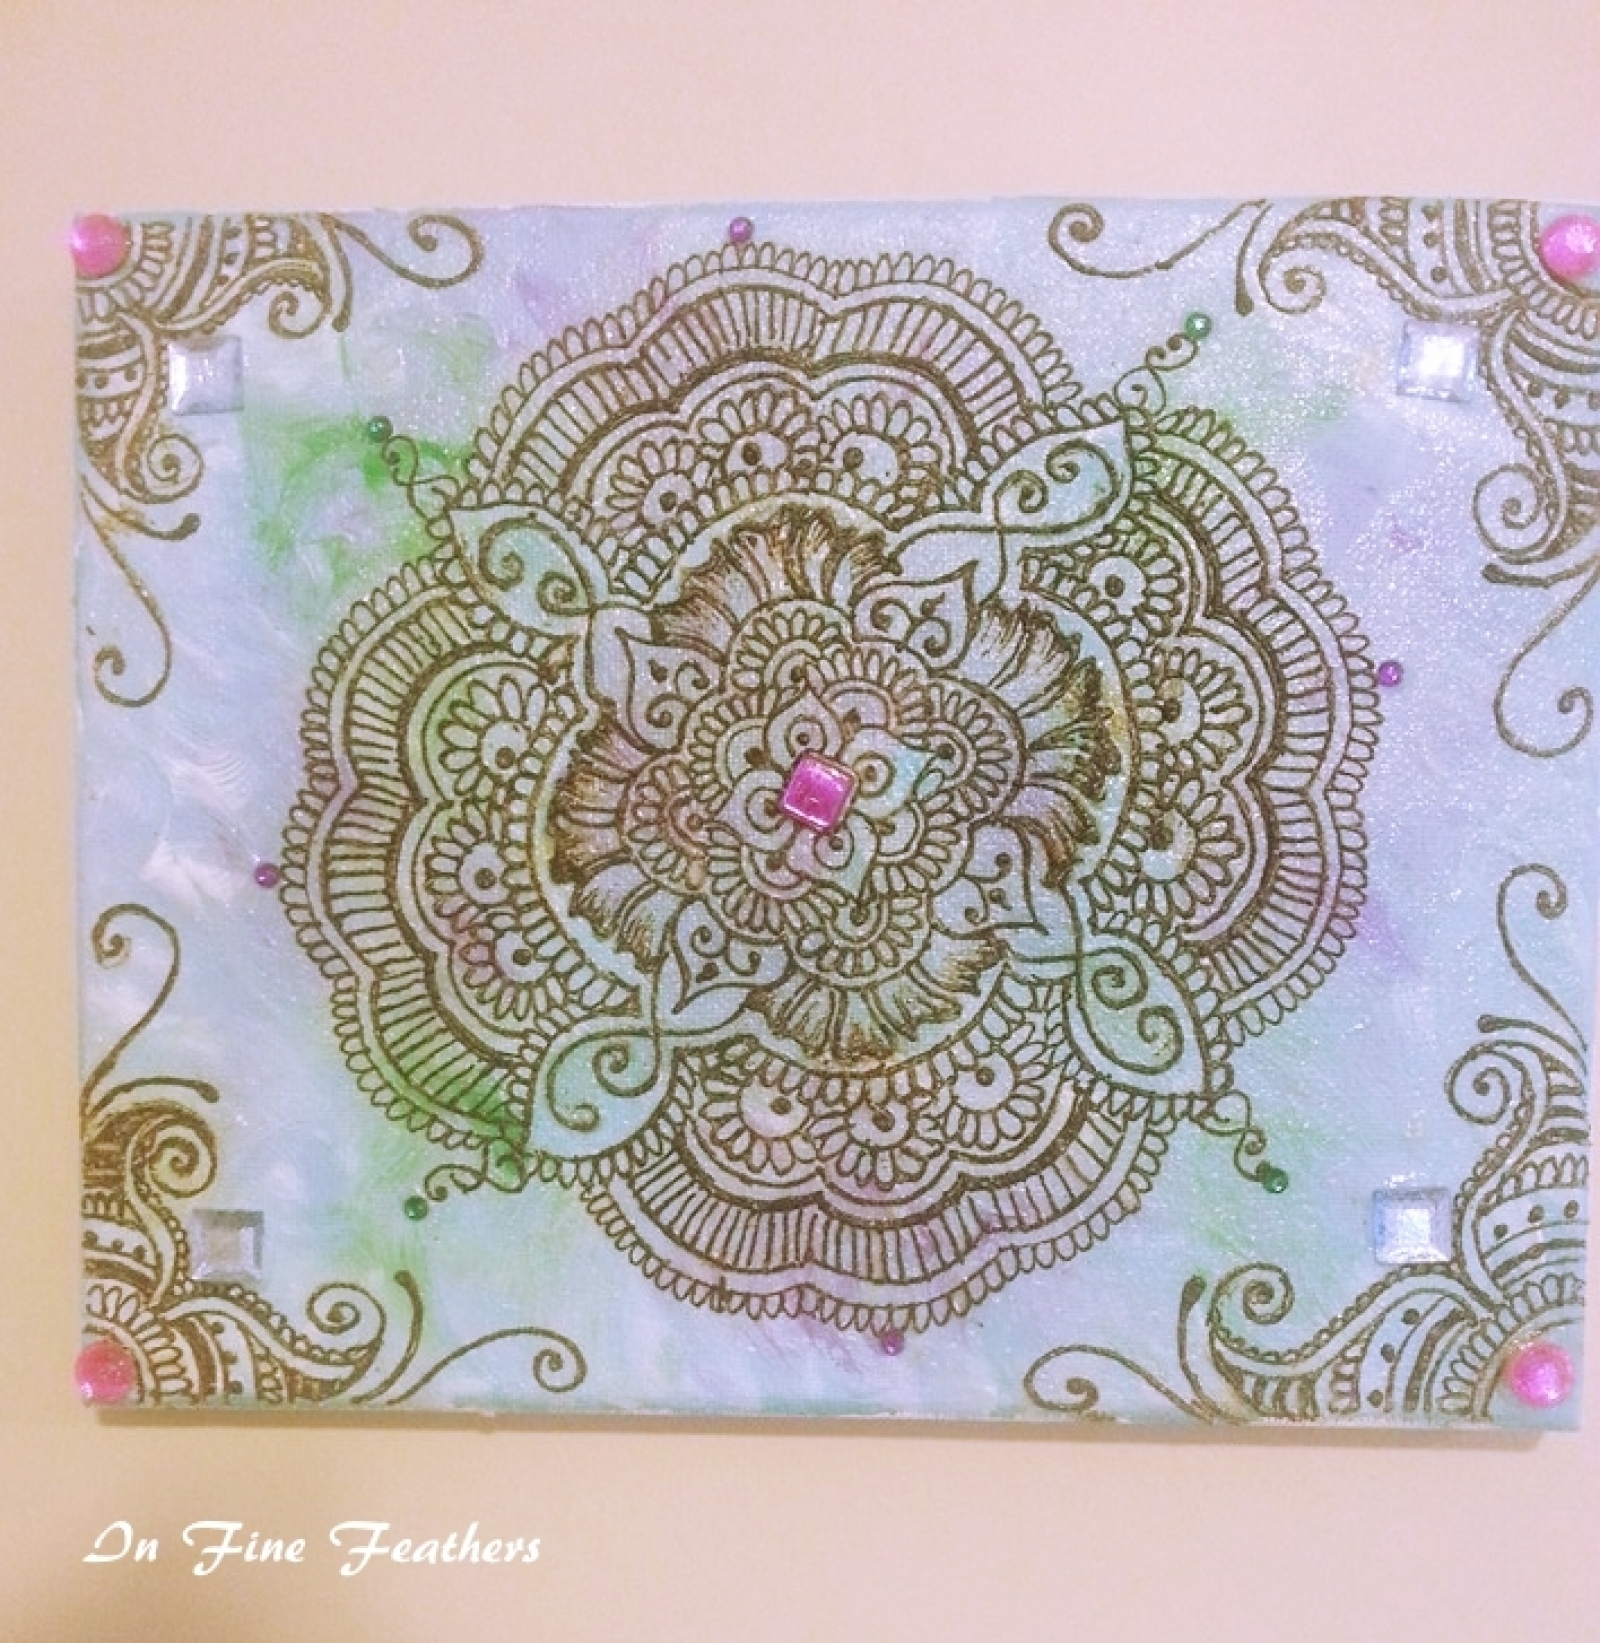 Henna Mandala Boho Chic Wall Art Yoga Studio Office Spring Decor With Regard To Most Recently Released Henna Wall Art (Gallery 5 of 20)